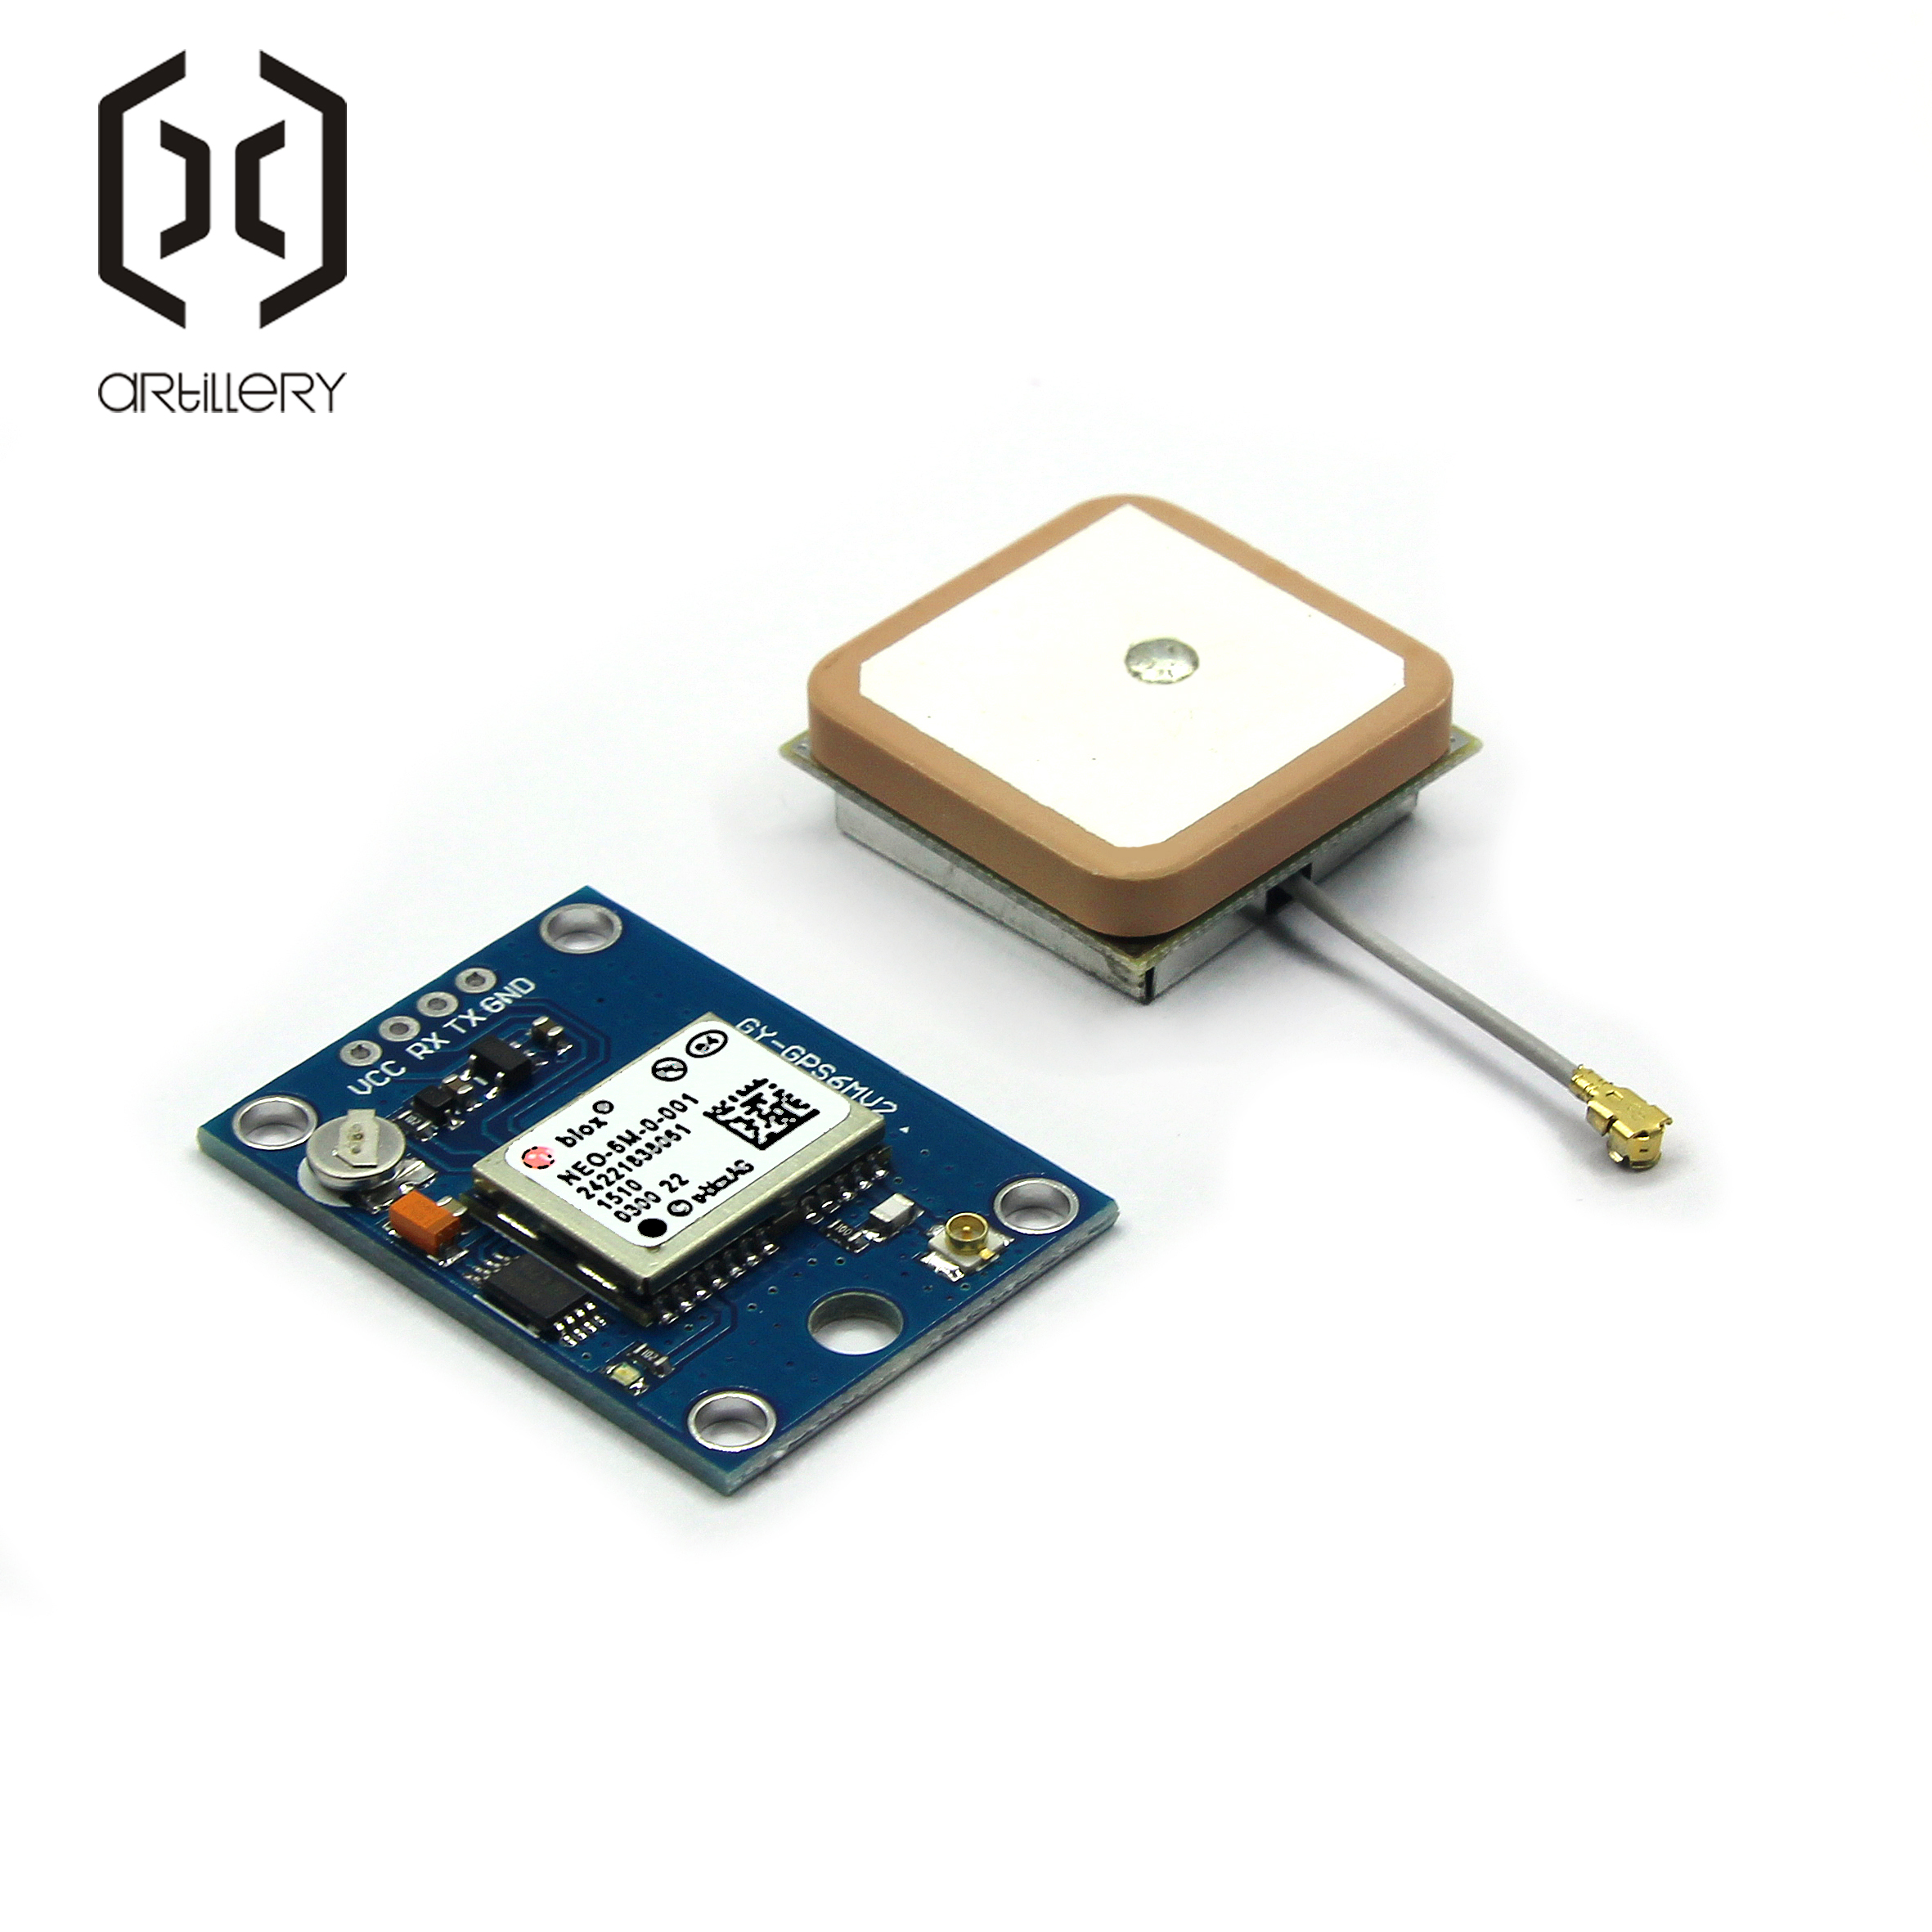 gy-neo6mv2-new-gps-module-neo-6m-neo6mv2-with-flight-control-eeprom-mwc-apm25-large-antenna-for-font-b-arduino-b-font